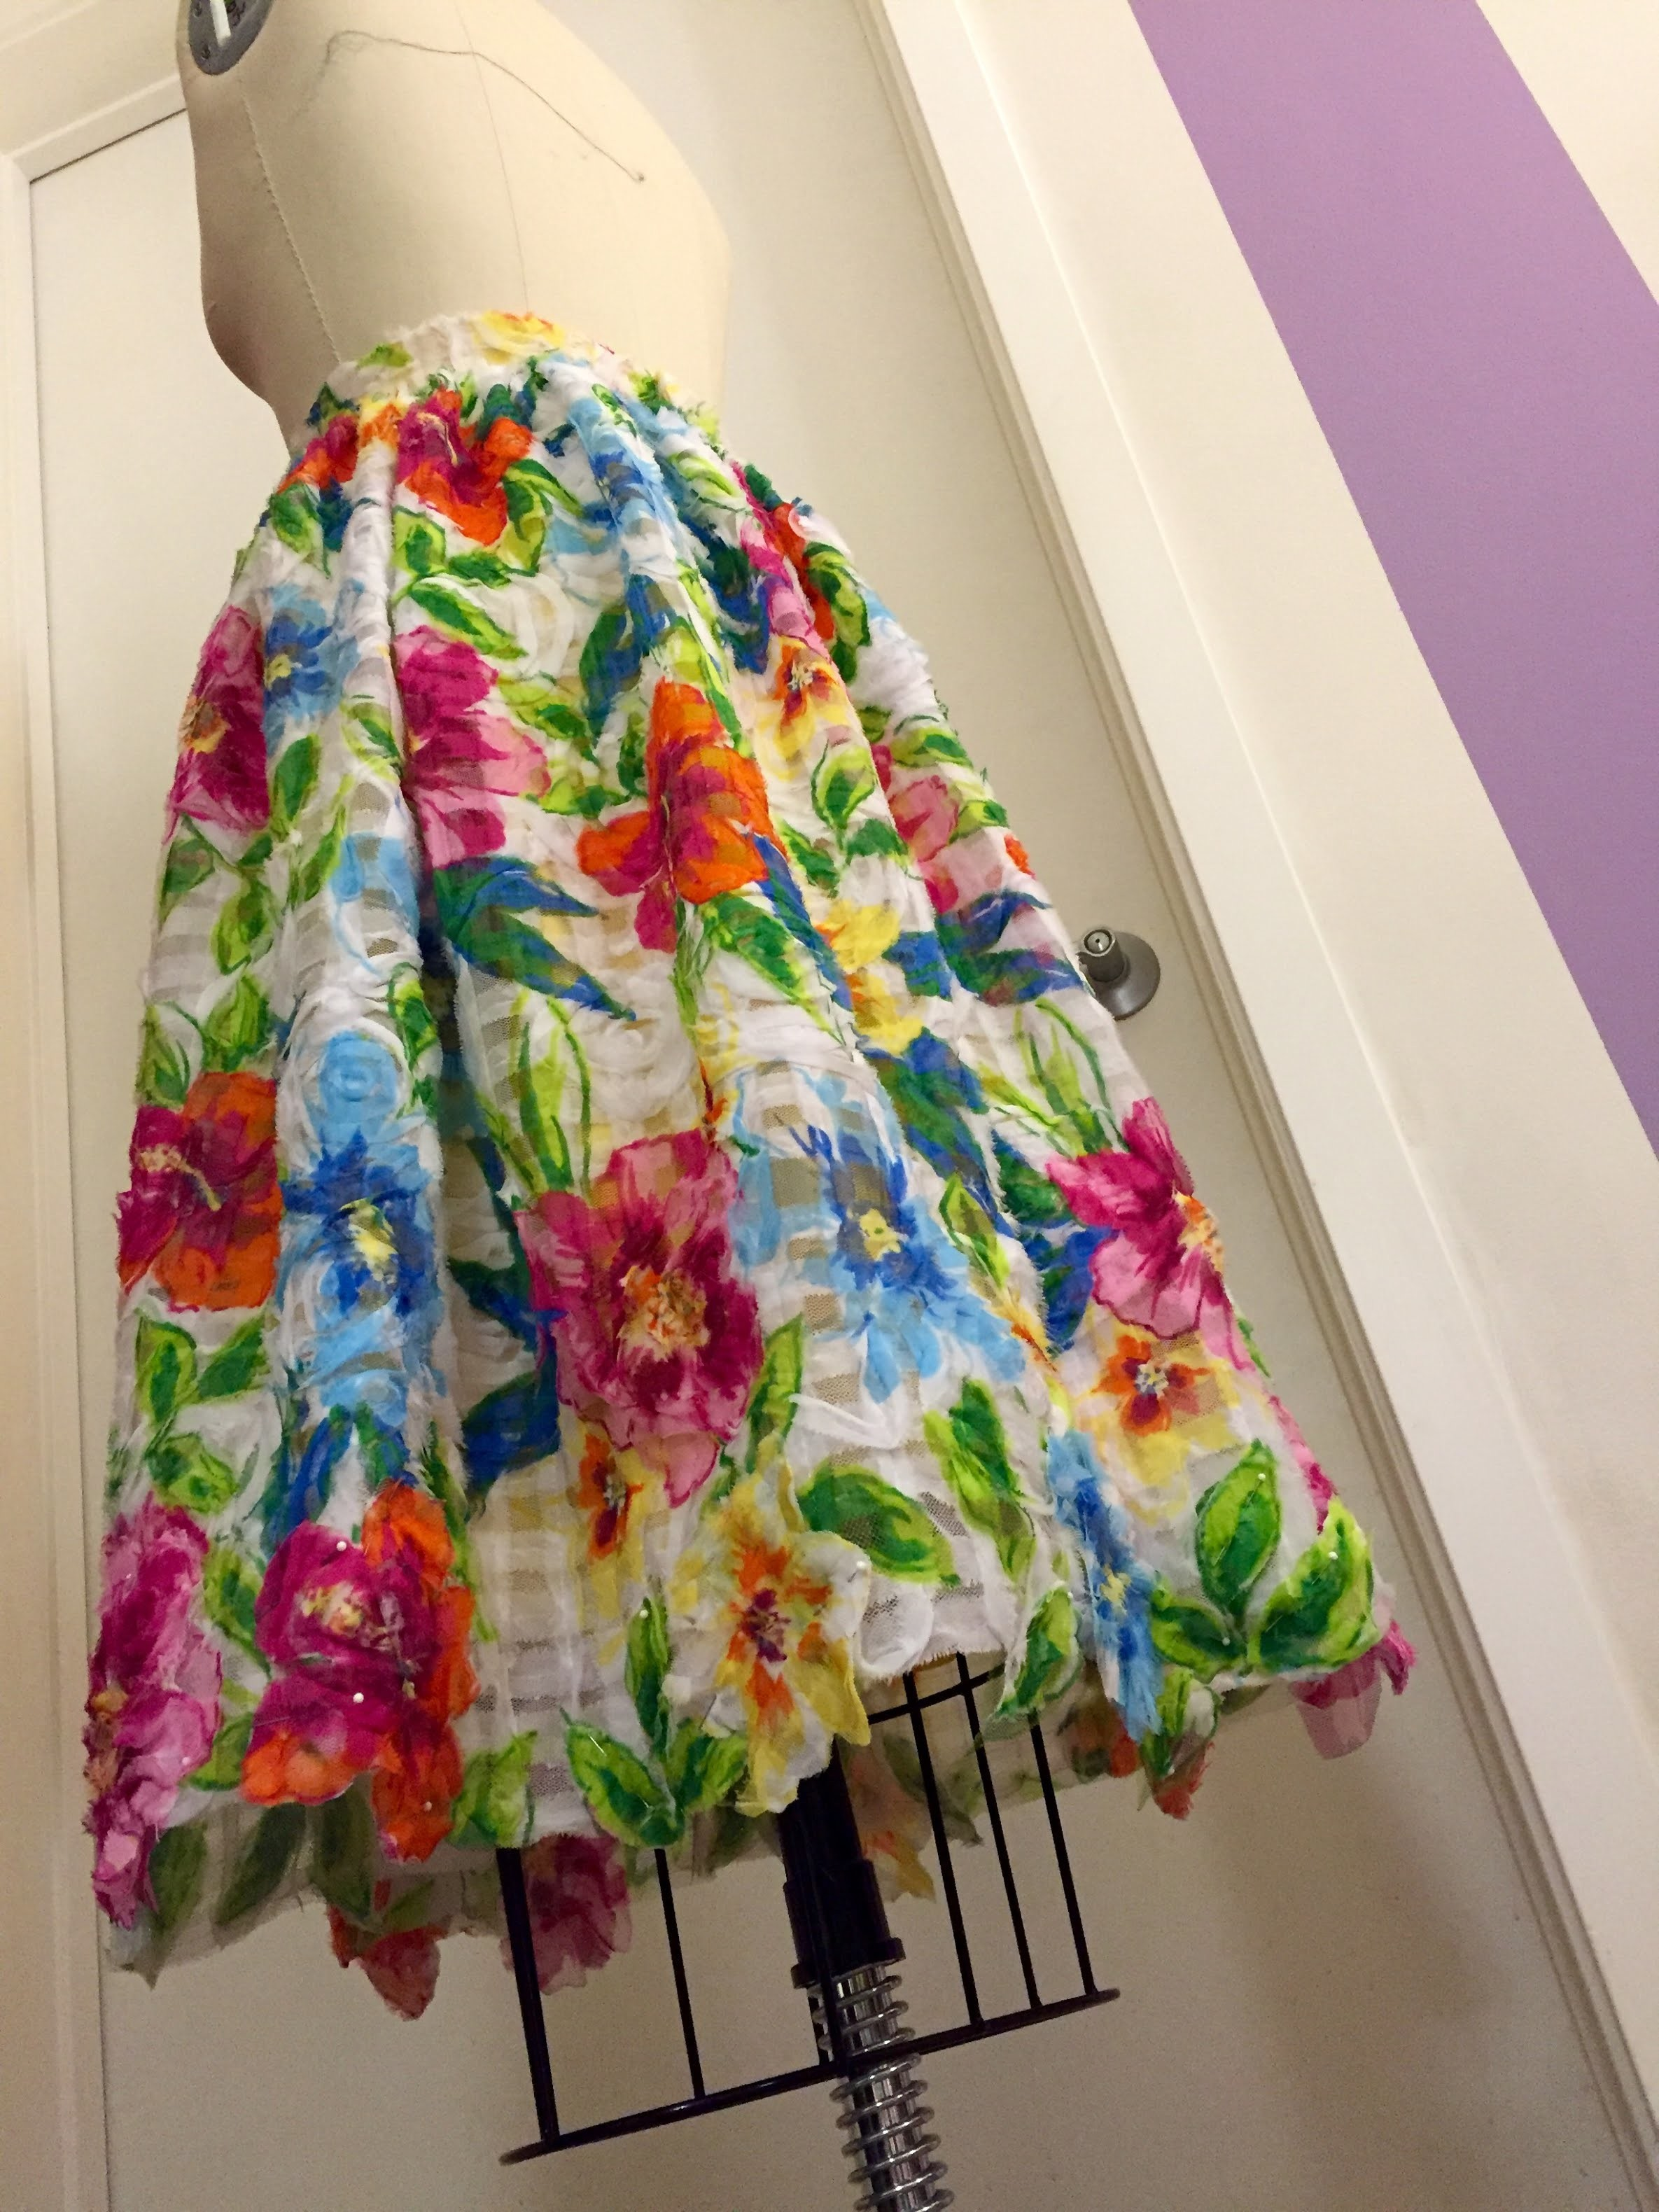 Sewing Project 1: How to make a gathered overskirt!